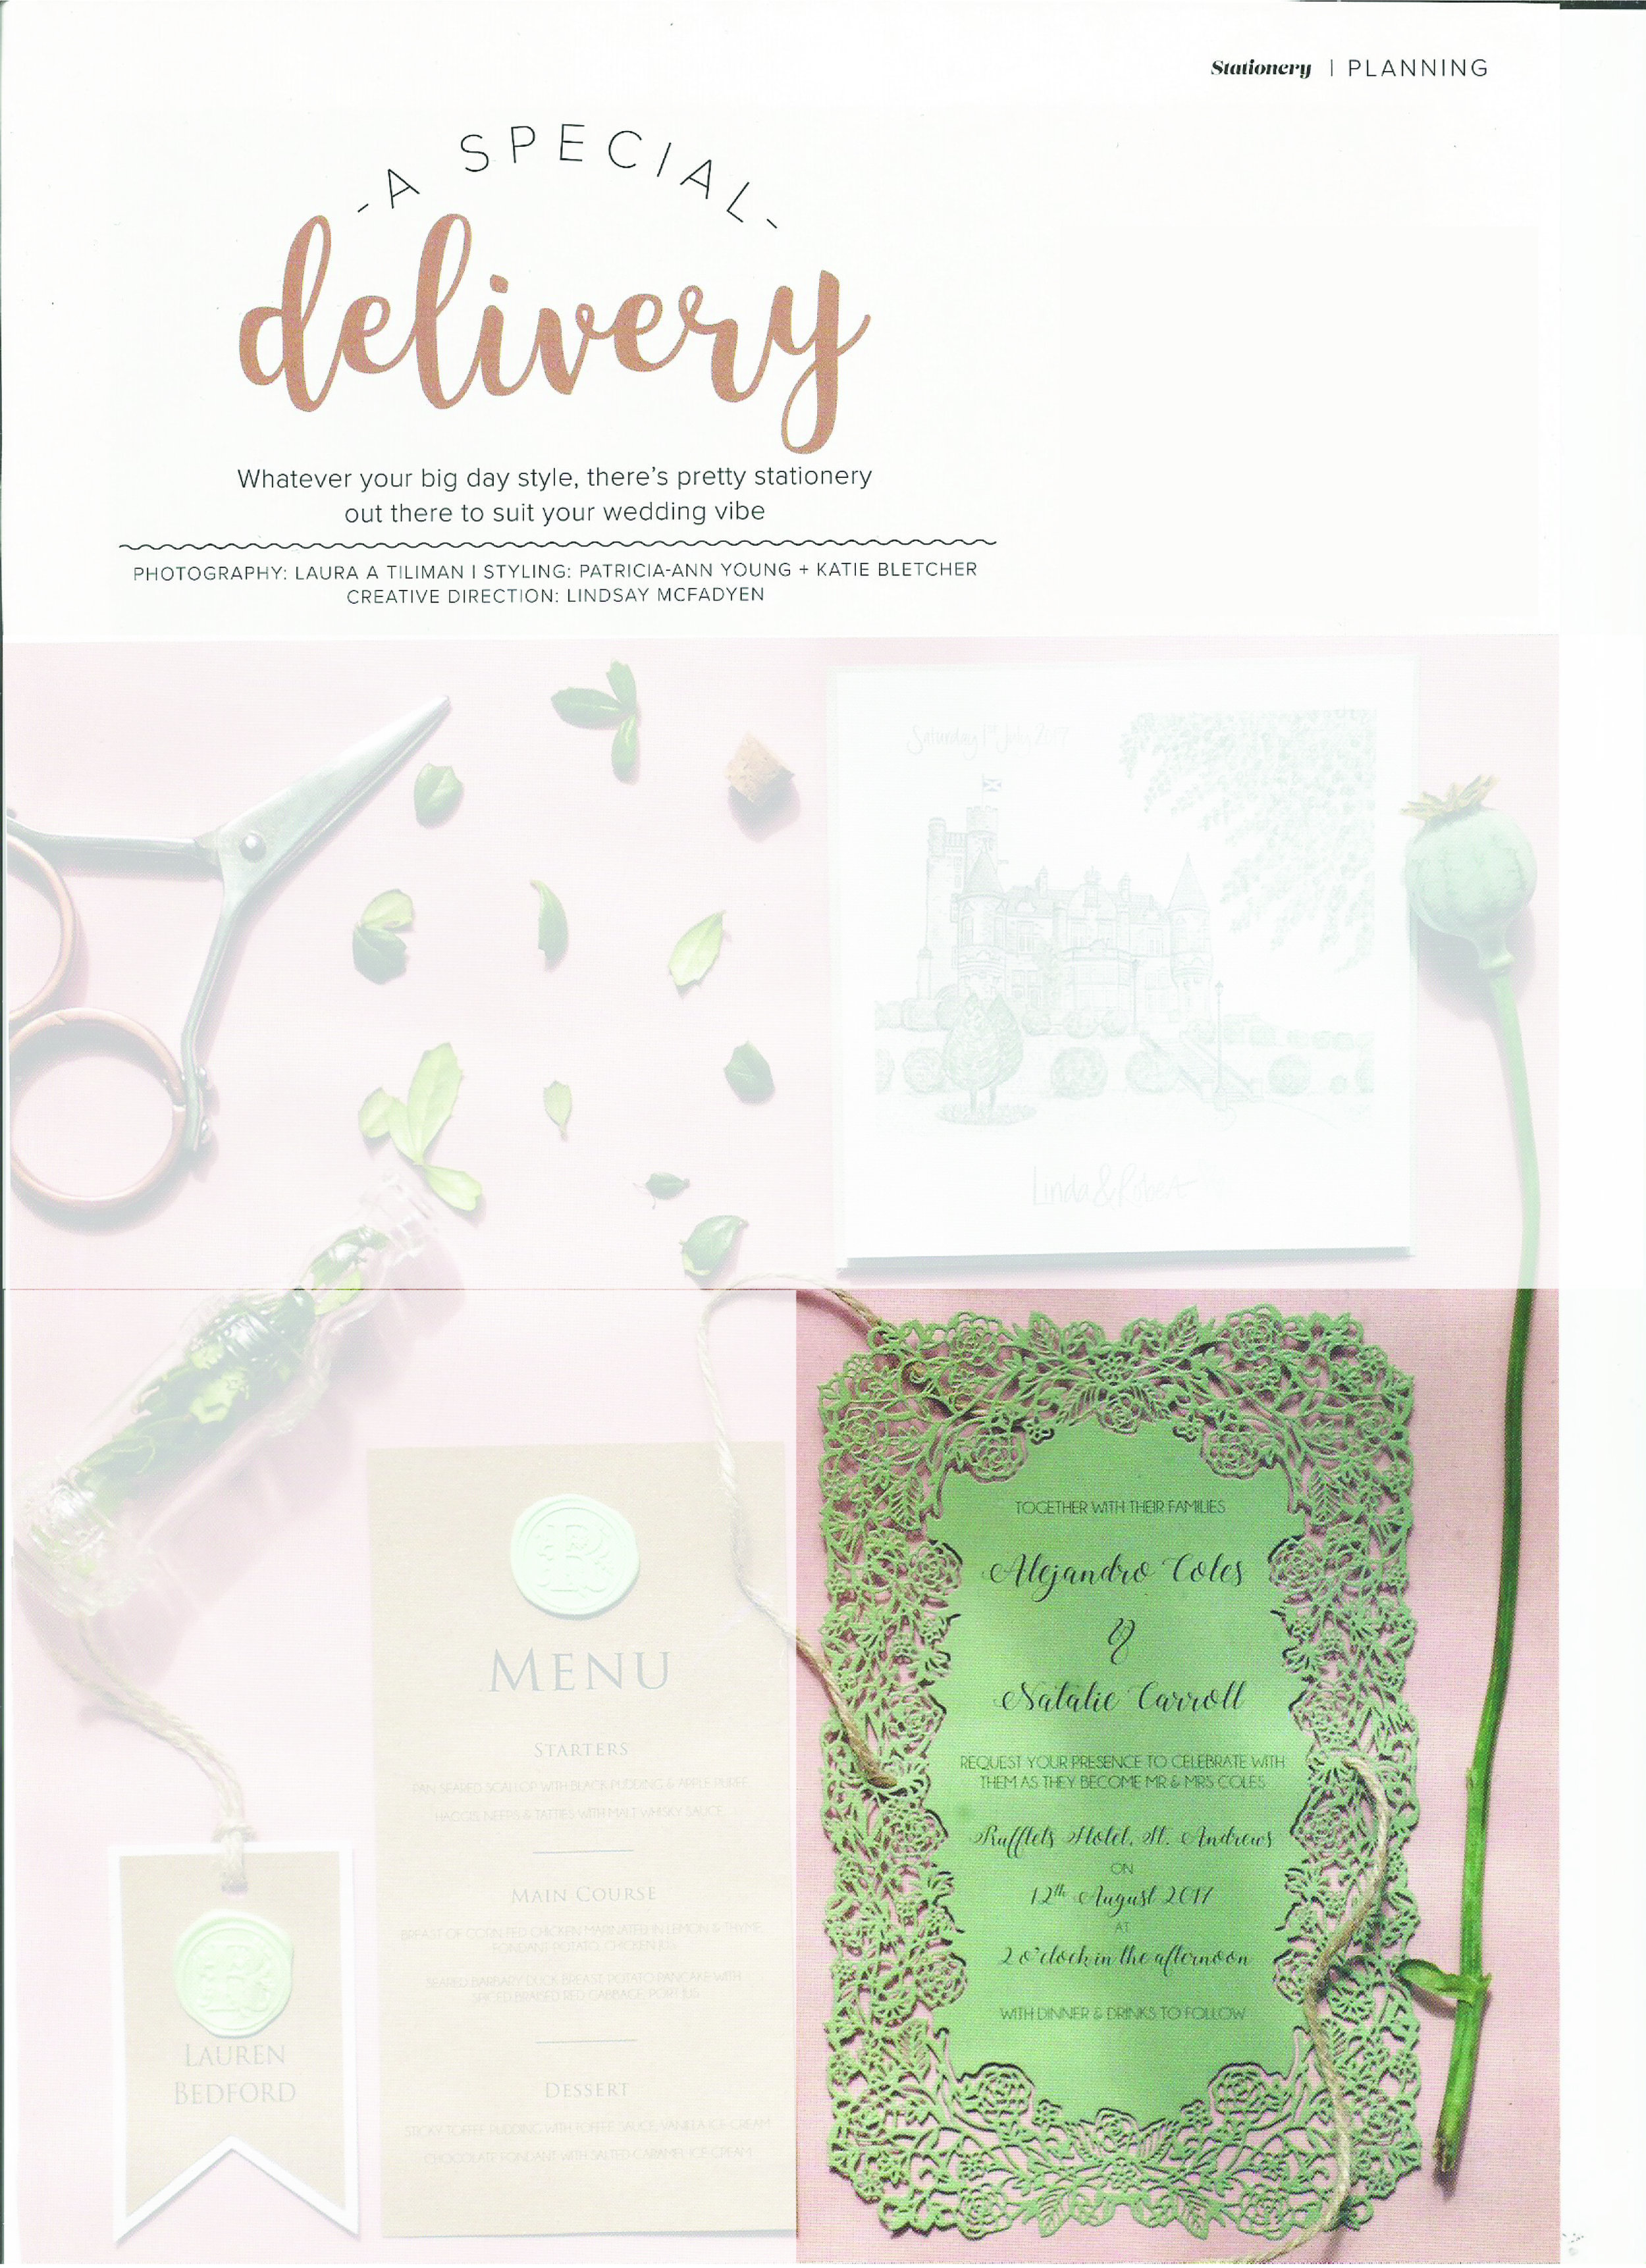 Scottish Wedding Directory - Our 'Shan' design has been a firm favorite for a while now. It's delicate design means that you don't have to go OTT to wow your guests with extra embellishments. ,Can be found in autum 17' issue, page 249